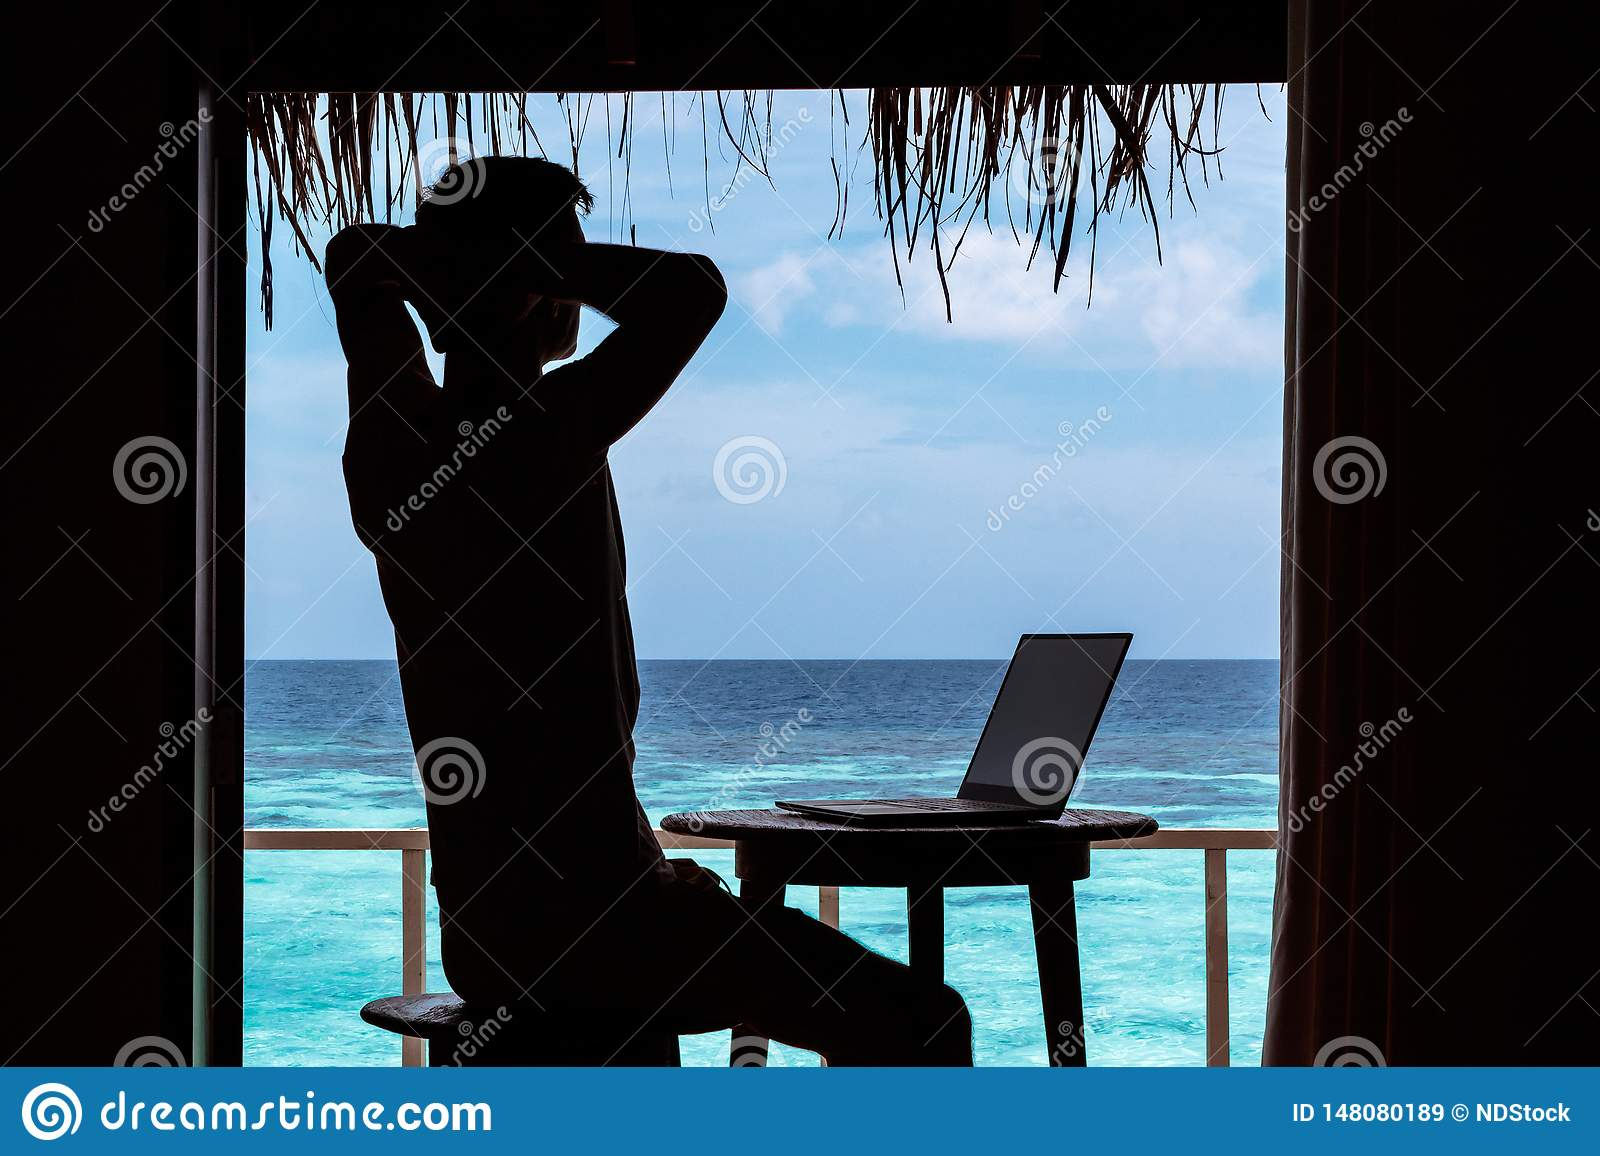 Silhouette of a young man relaxing while working with a computer on a table. Clear blue tropical water as background